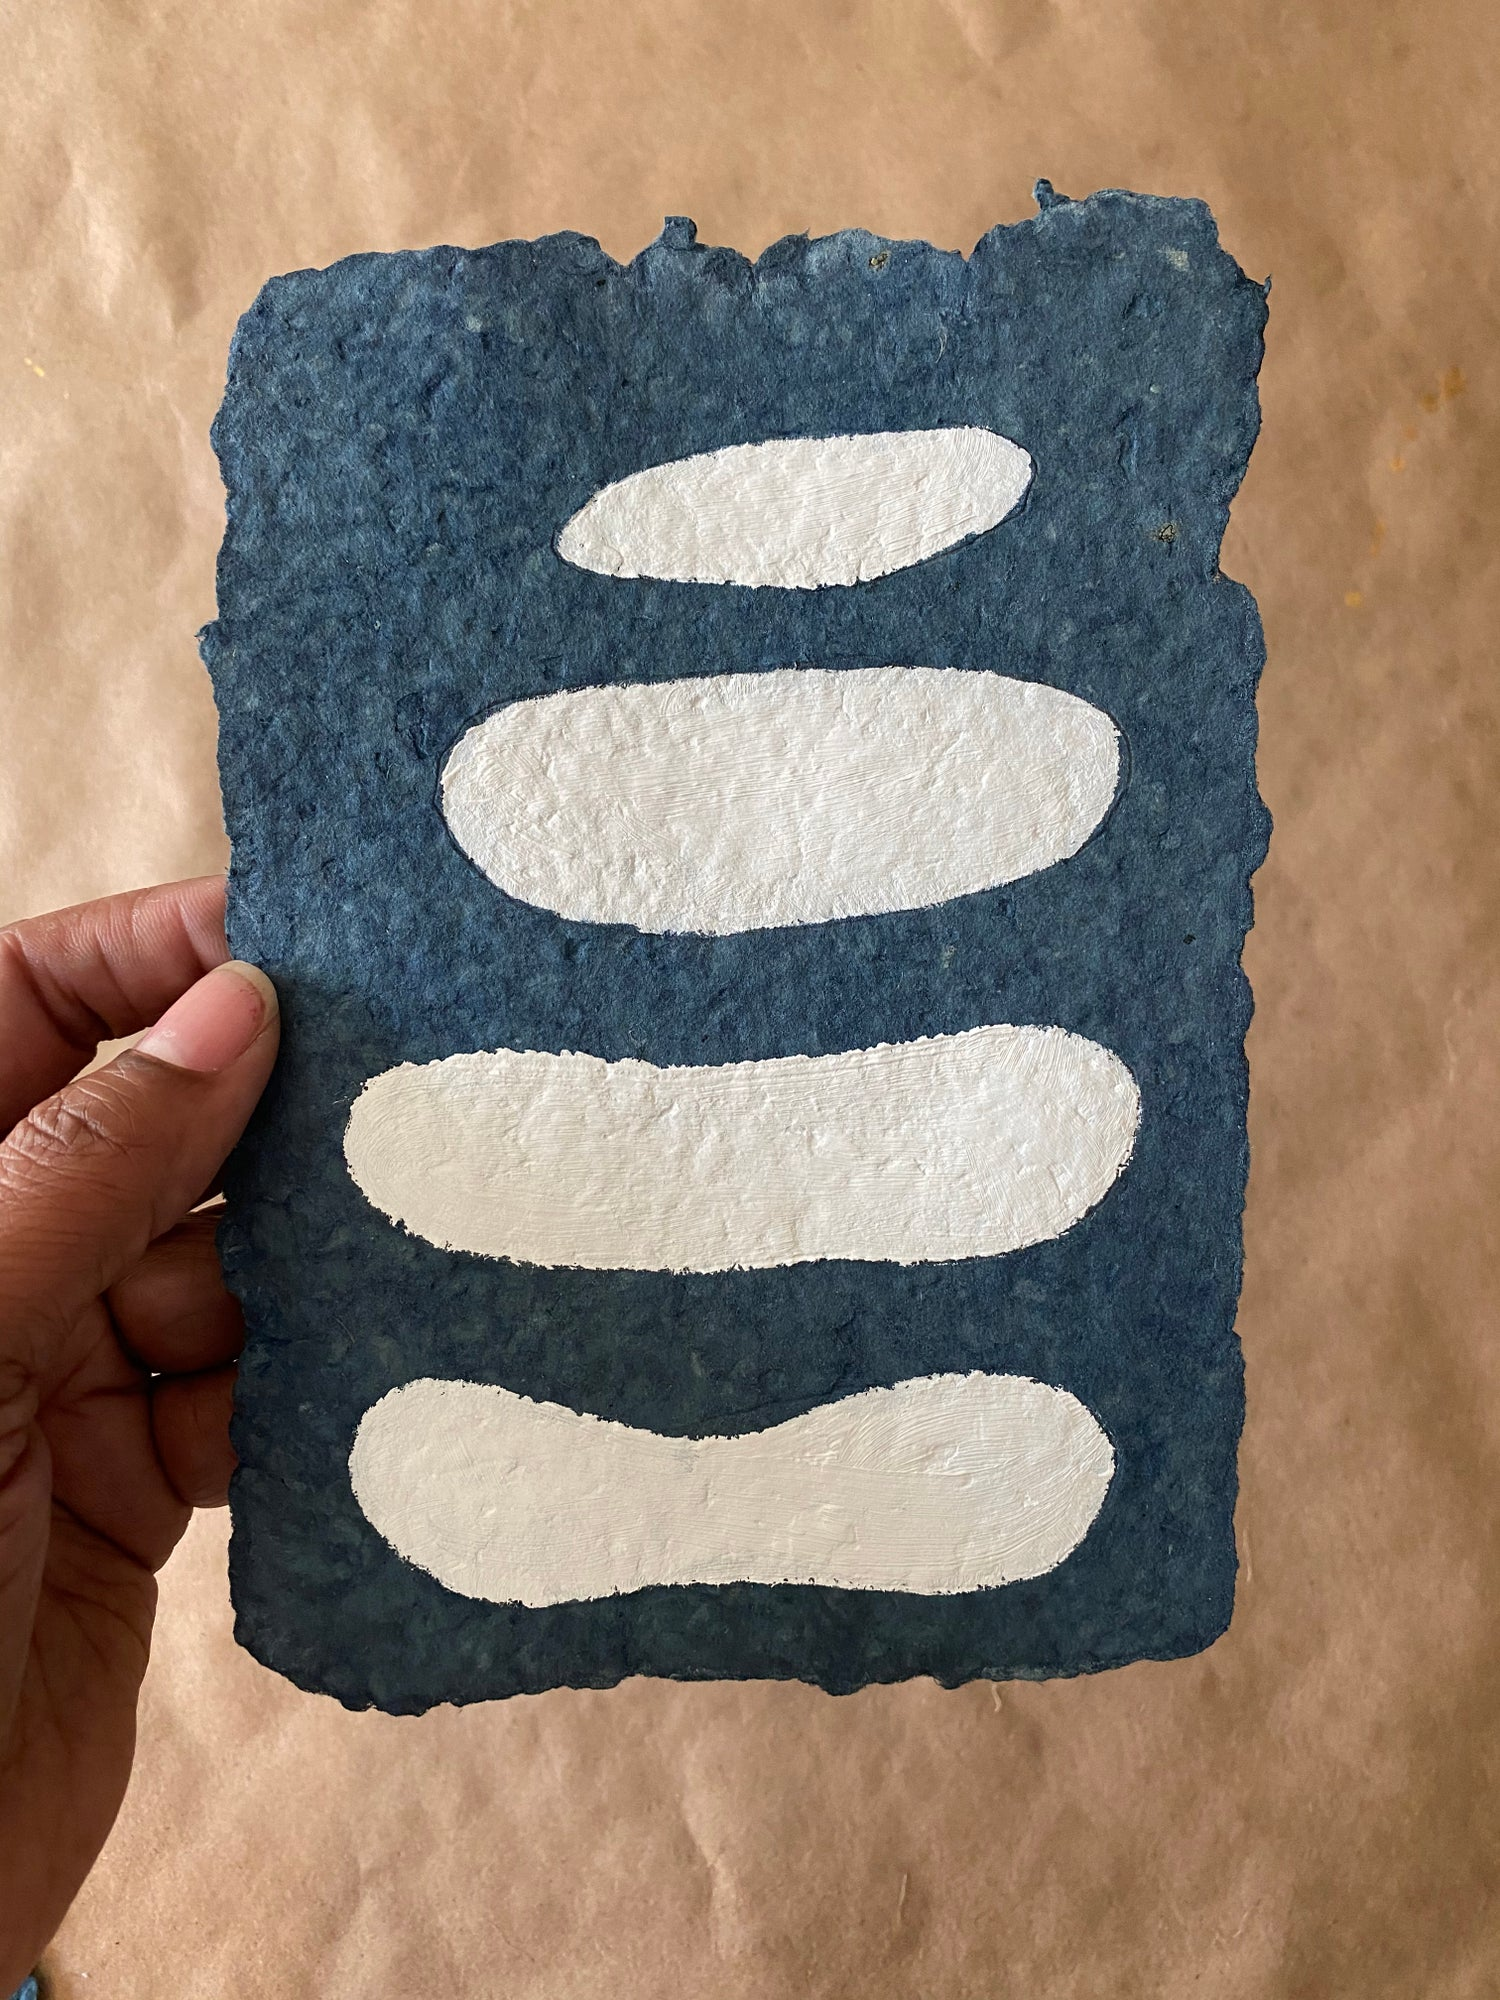 Image of ML • The Shape Collection • Indigo Handmade Paper no. 2